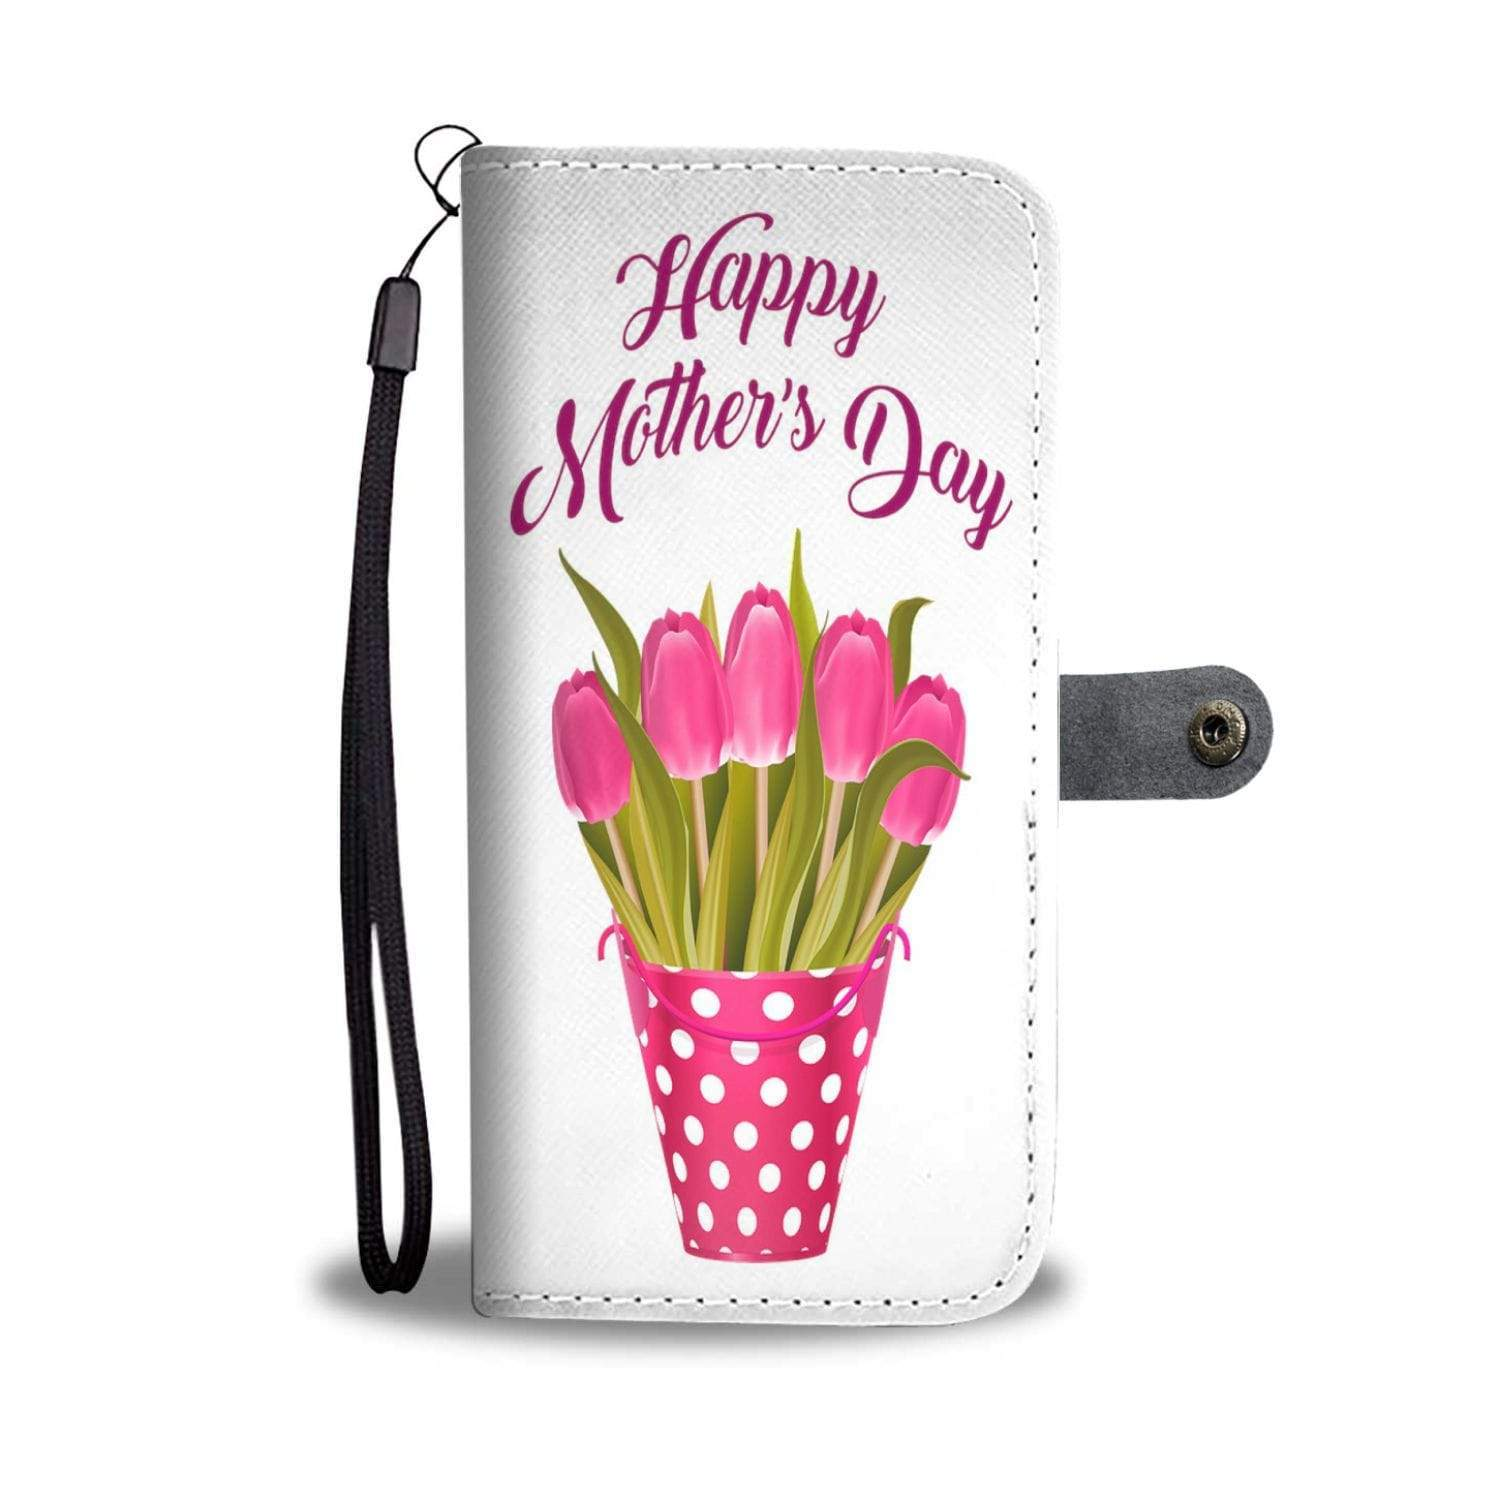 New Custom Designed Mother's Day Wallet Case - Merchandize.ca